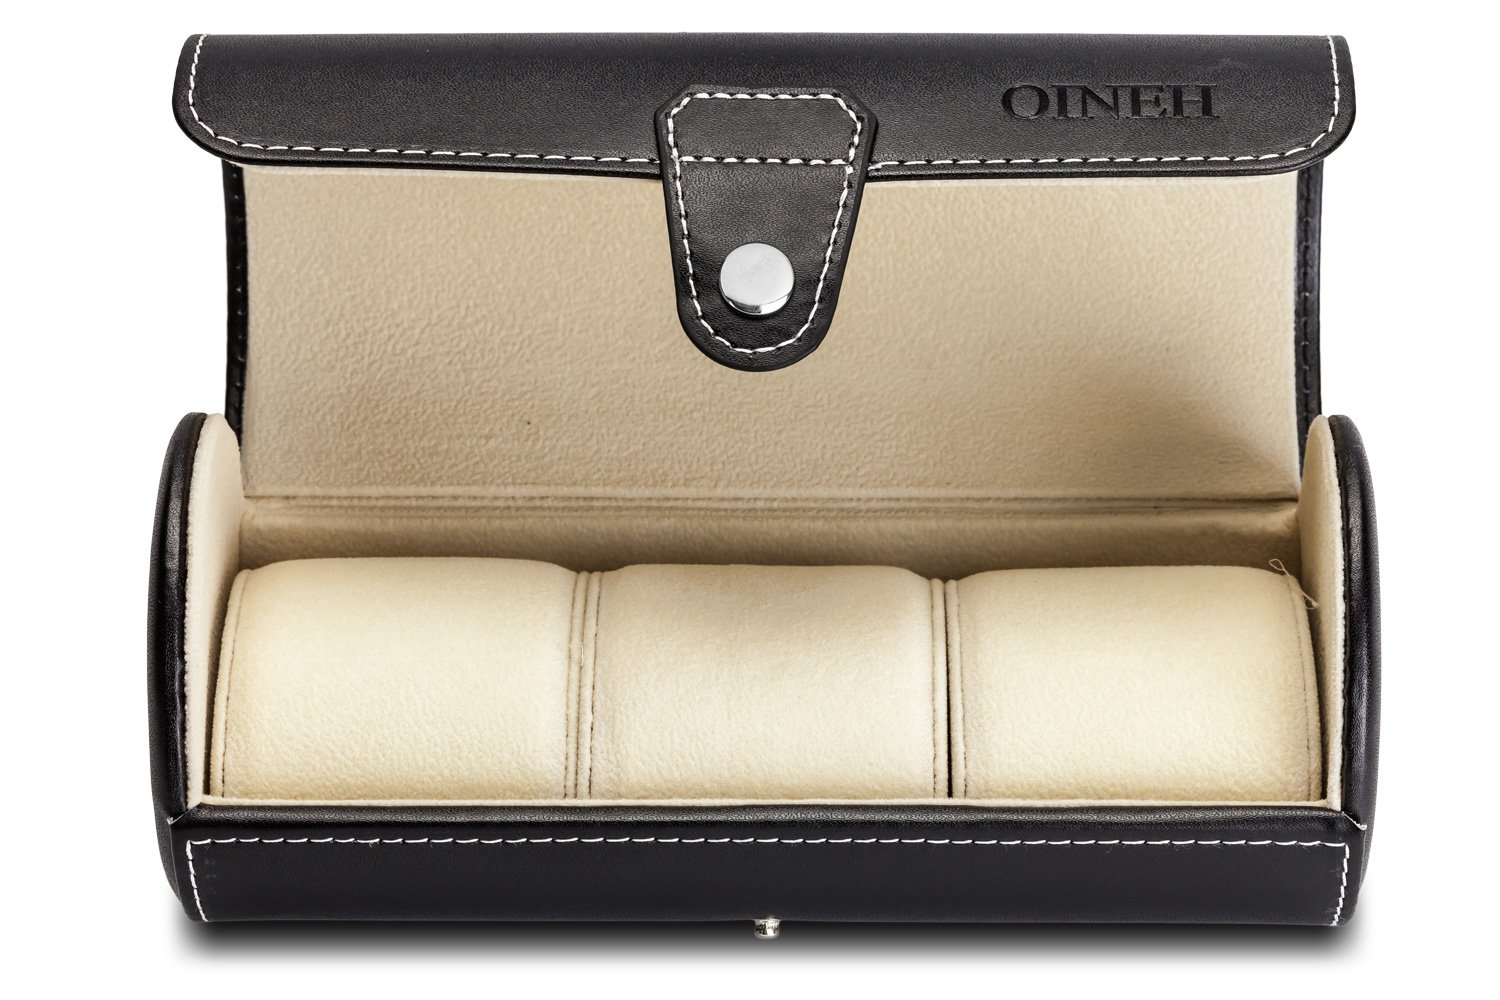 Leatherette Roll Traveler's Watch Storage Organizer for 3 Watch and/or Bracelets (Black) by Oineh (Image #1)